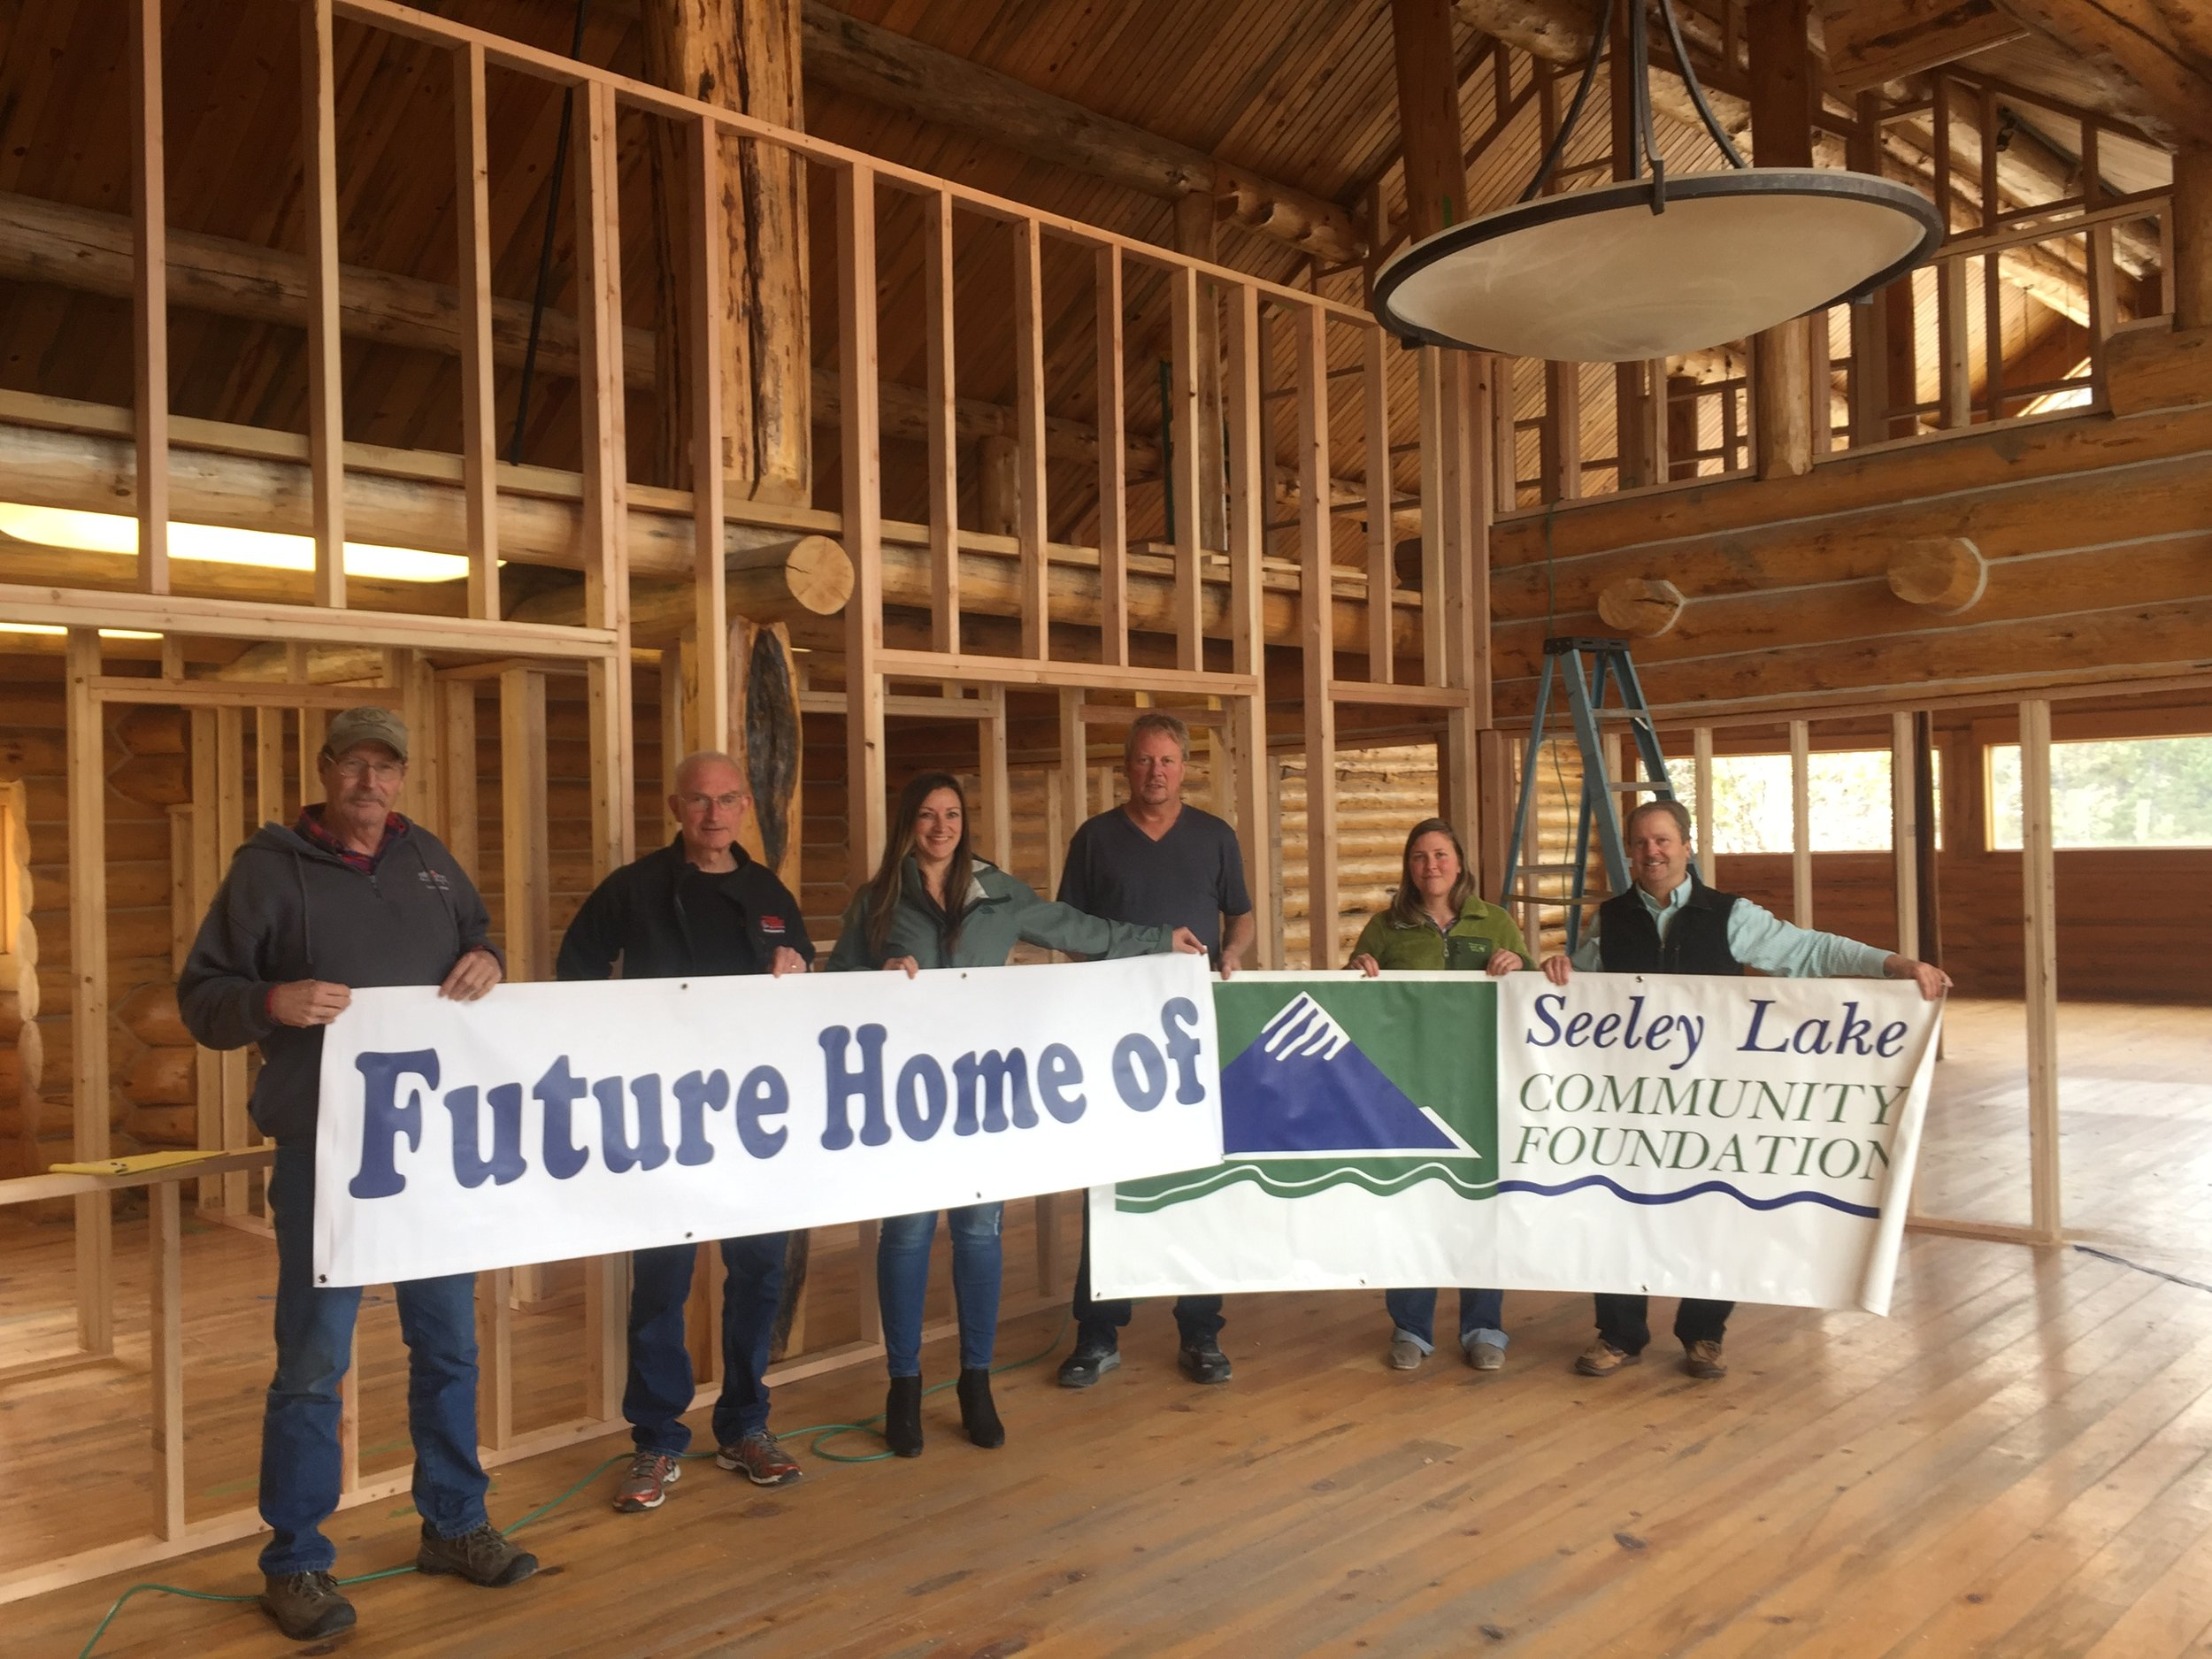 Future home of… - March: Current and former SLCF board members, excited about the new building!